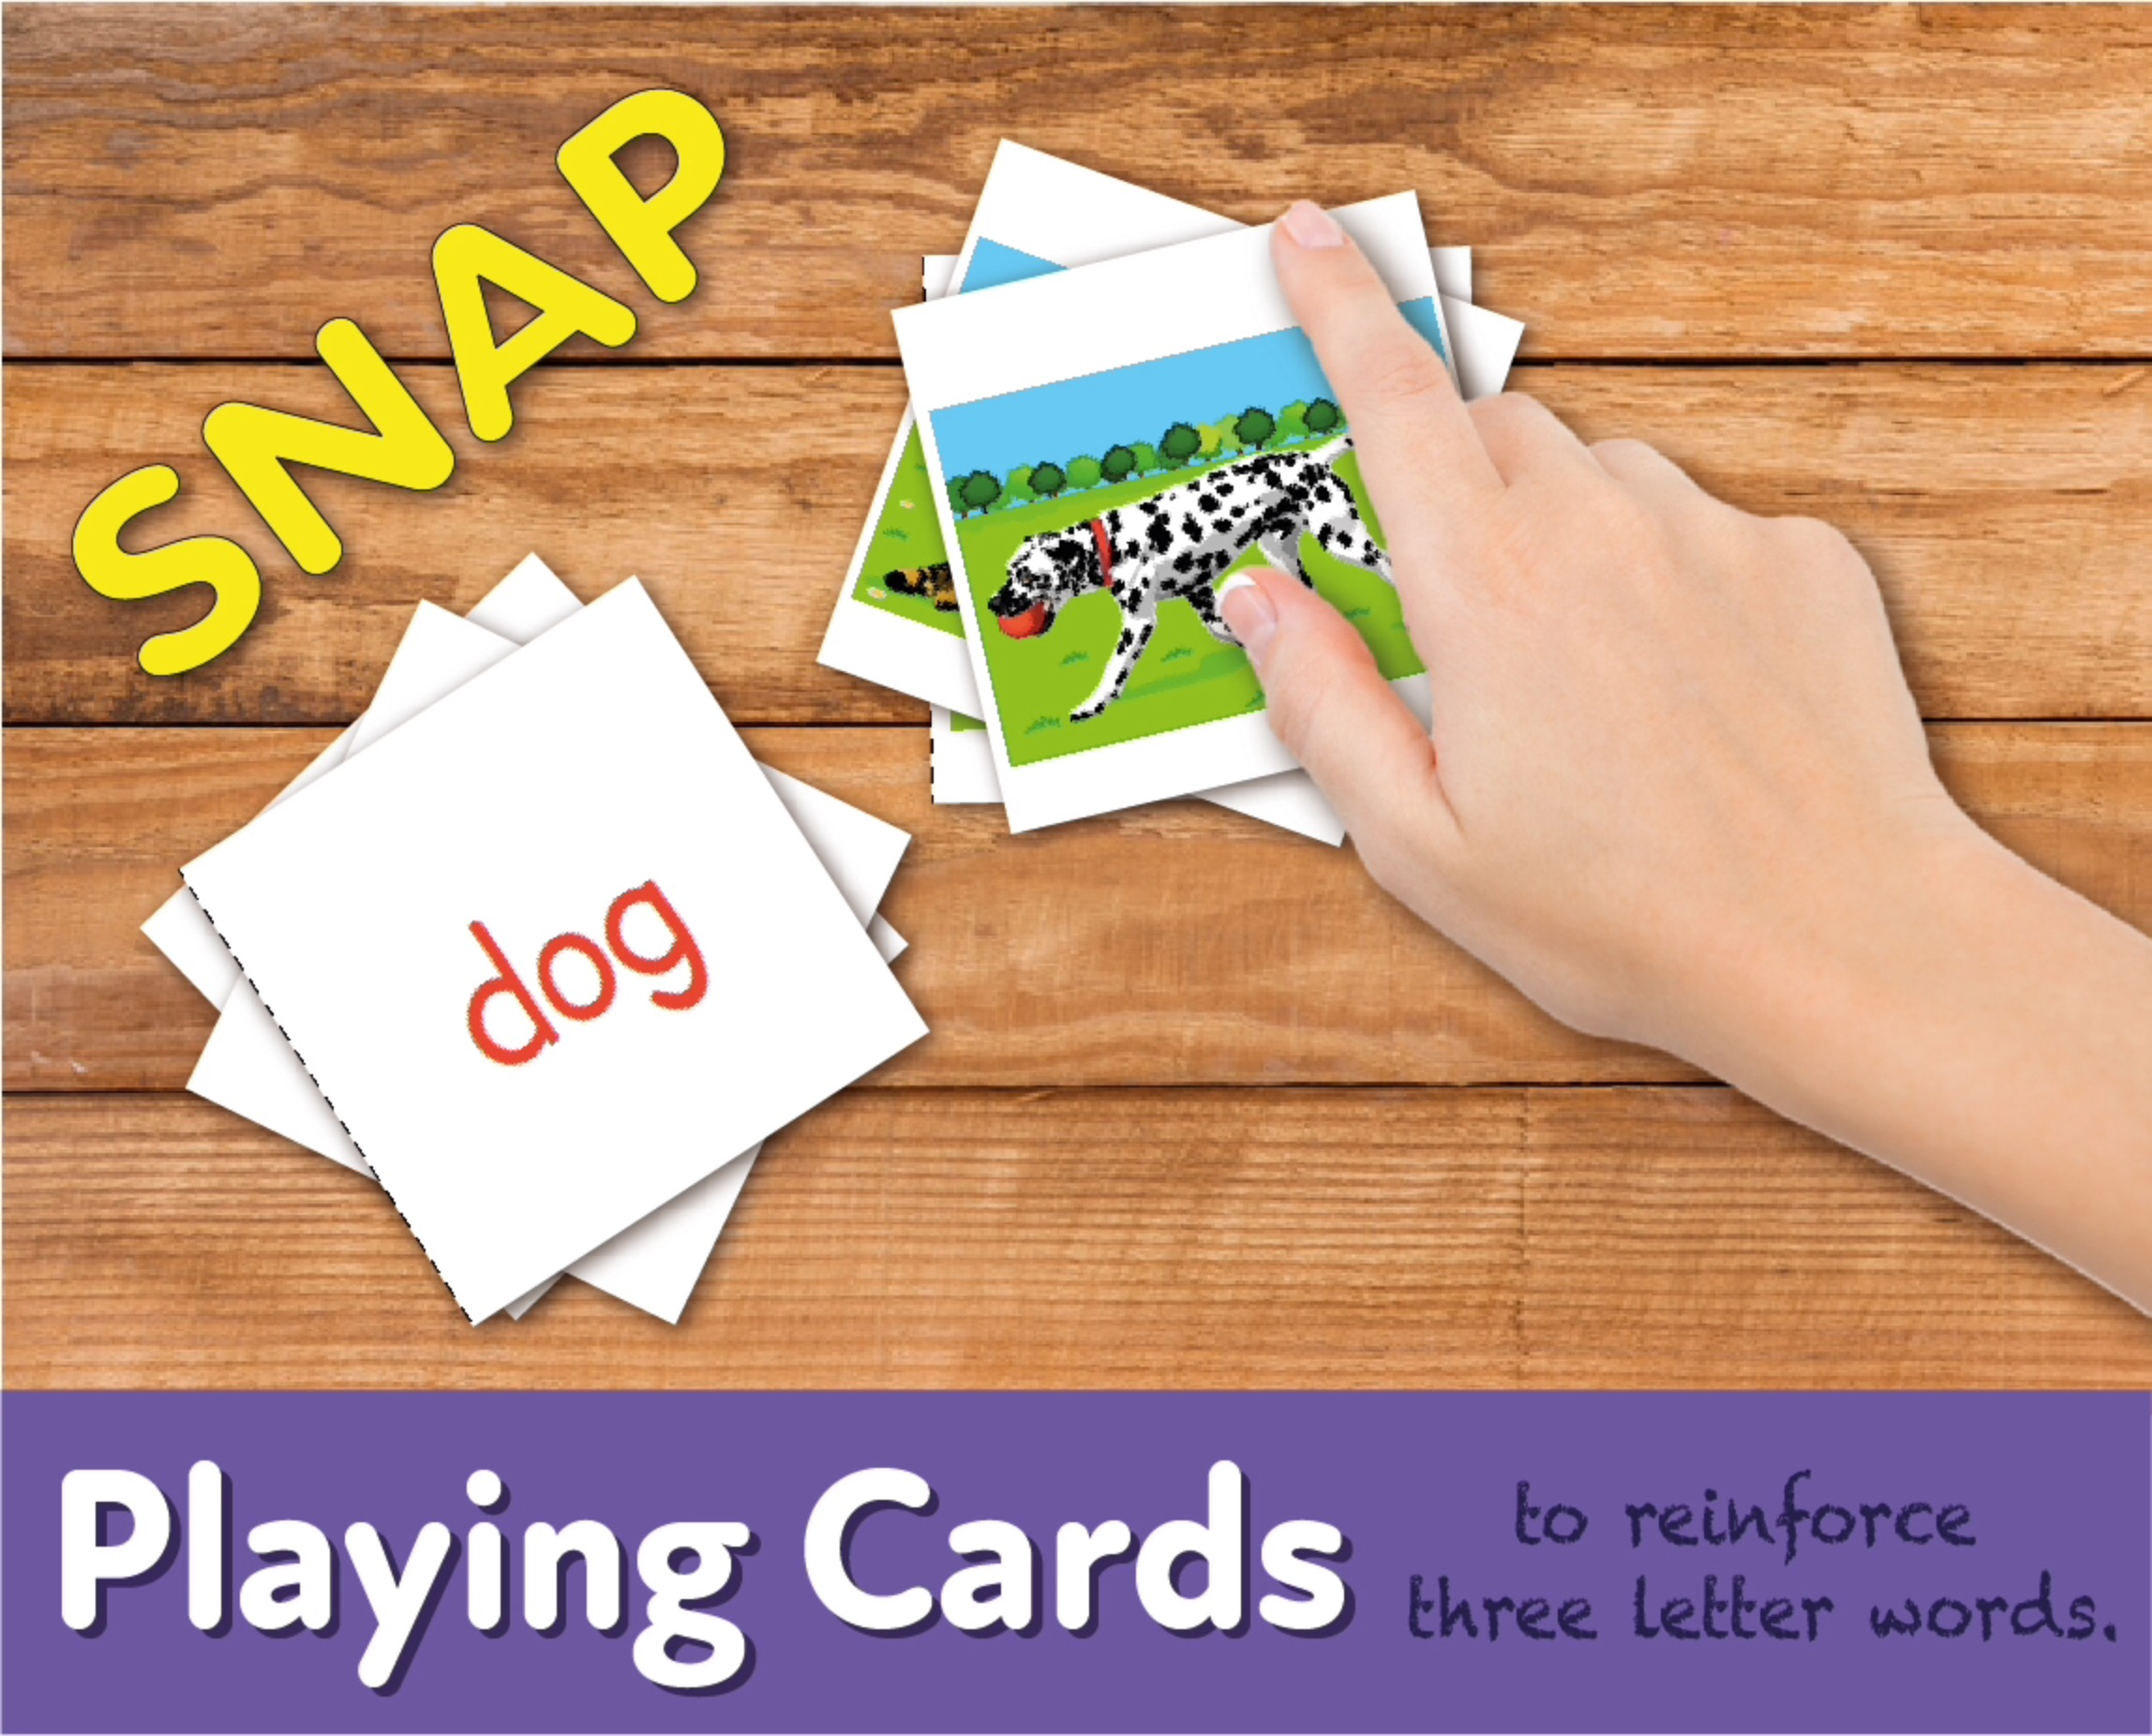 Playing Cards To Reinforce Three Letter Words (4-7 years)